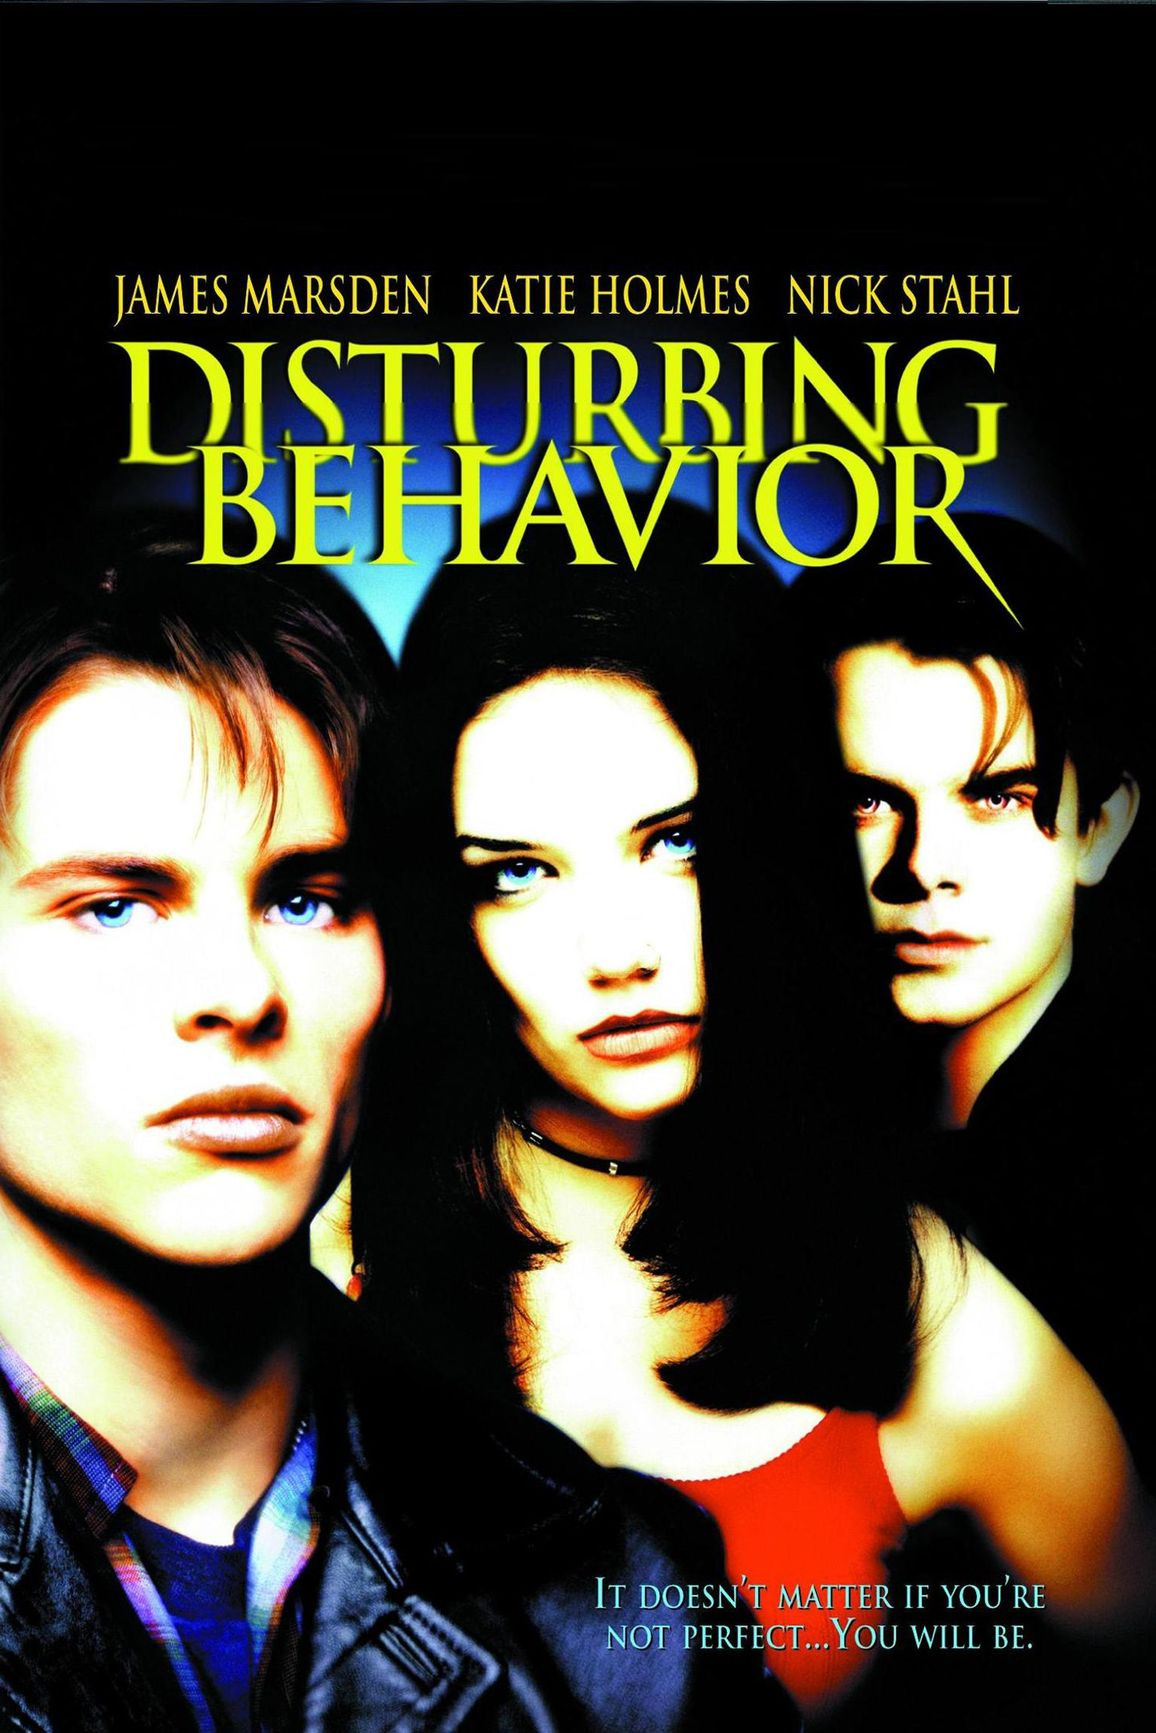 [Stream And Scream] Break Through The Wall of Conformity And Social Pressures with DISTURBING BEHAVIOR